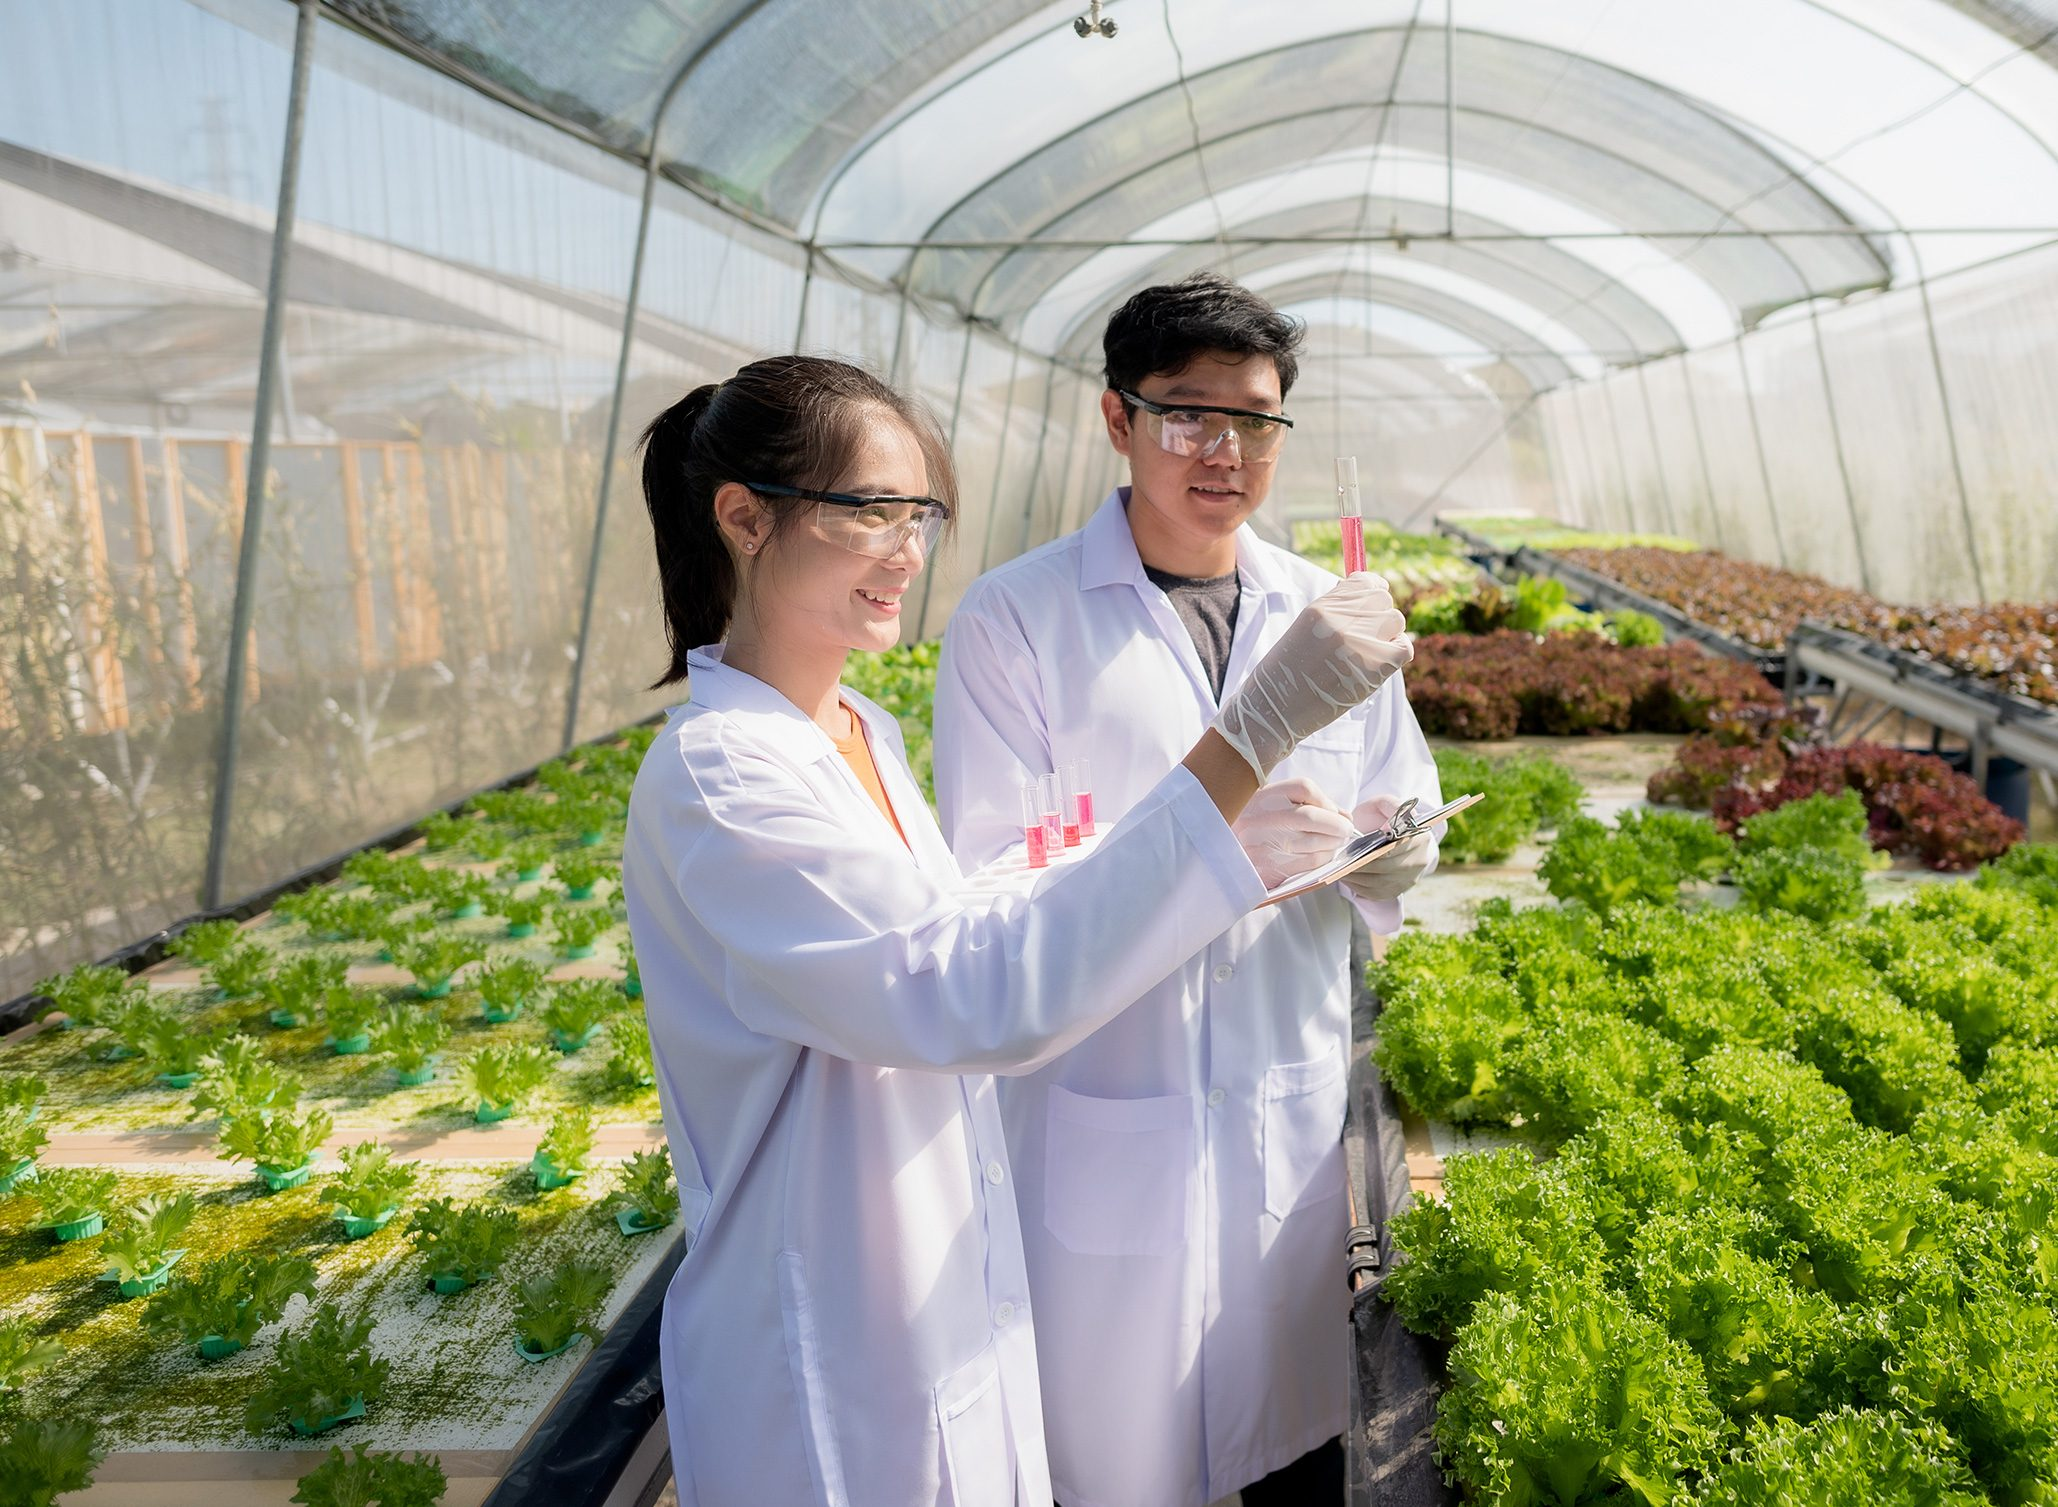 Two east-asian people in lab coats working in a poly tunnel